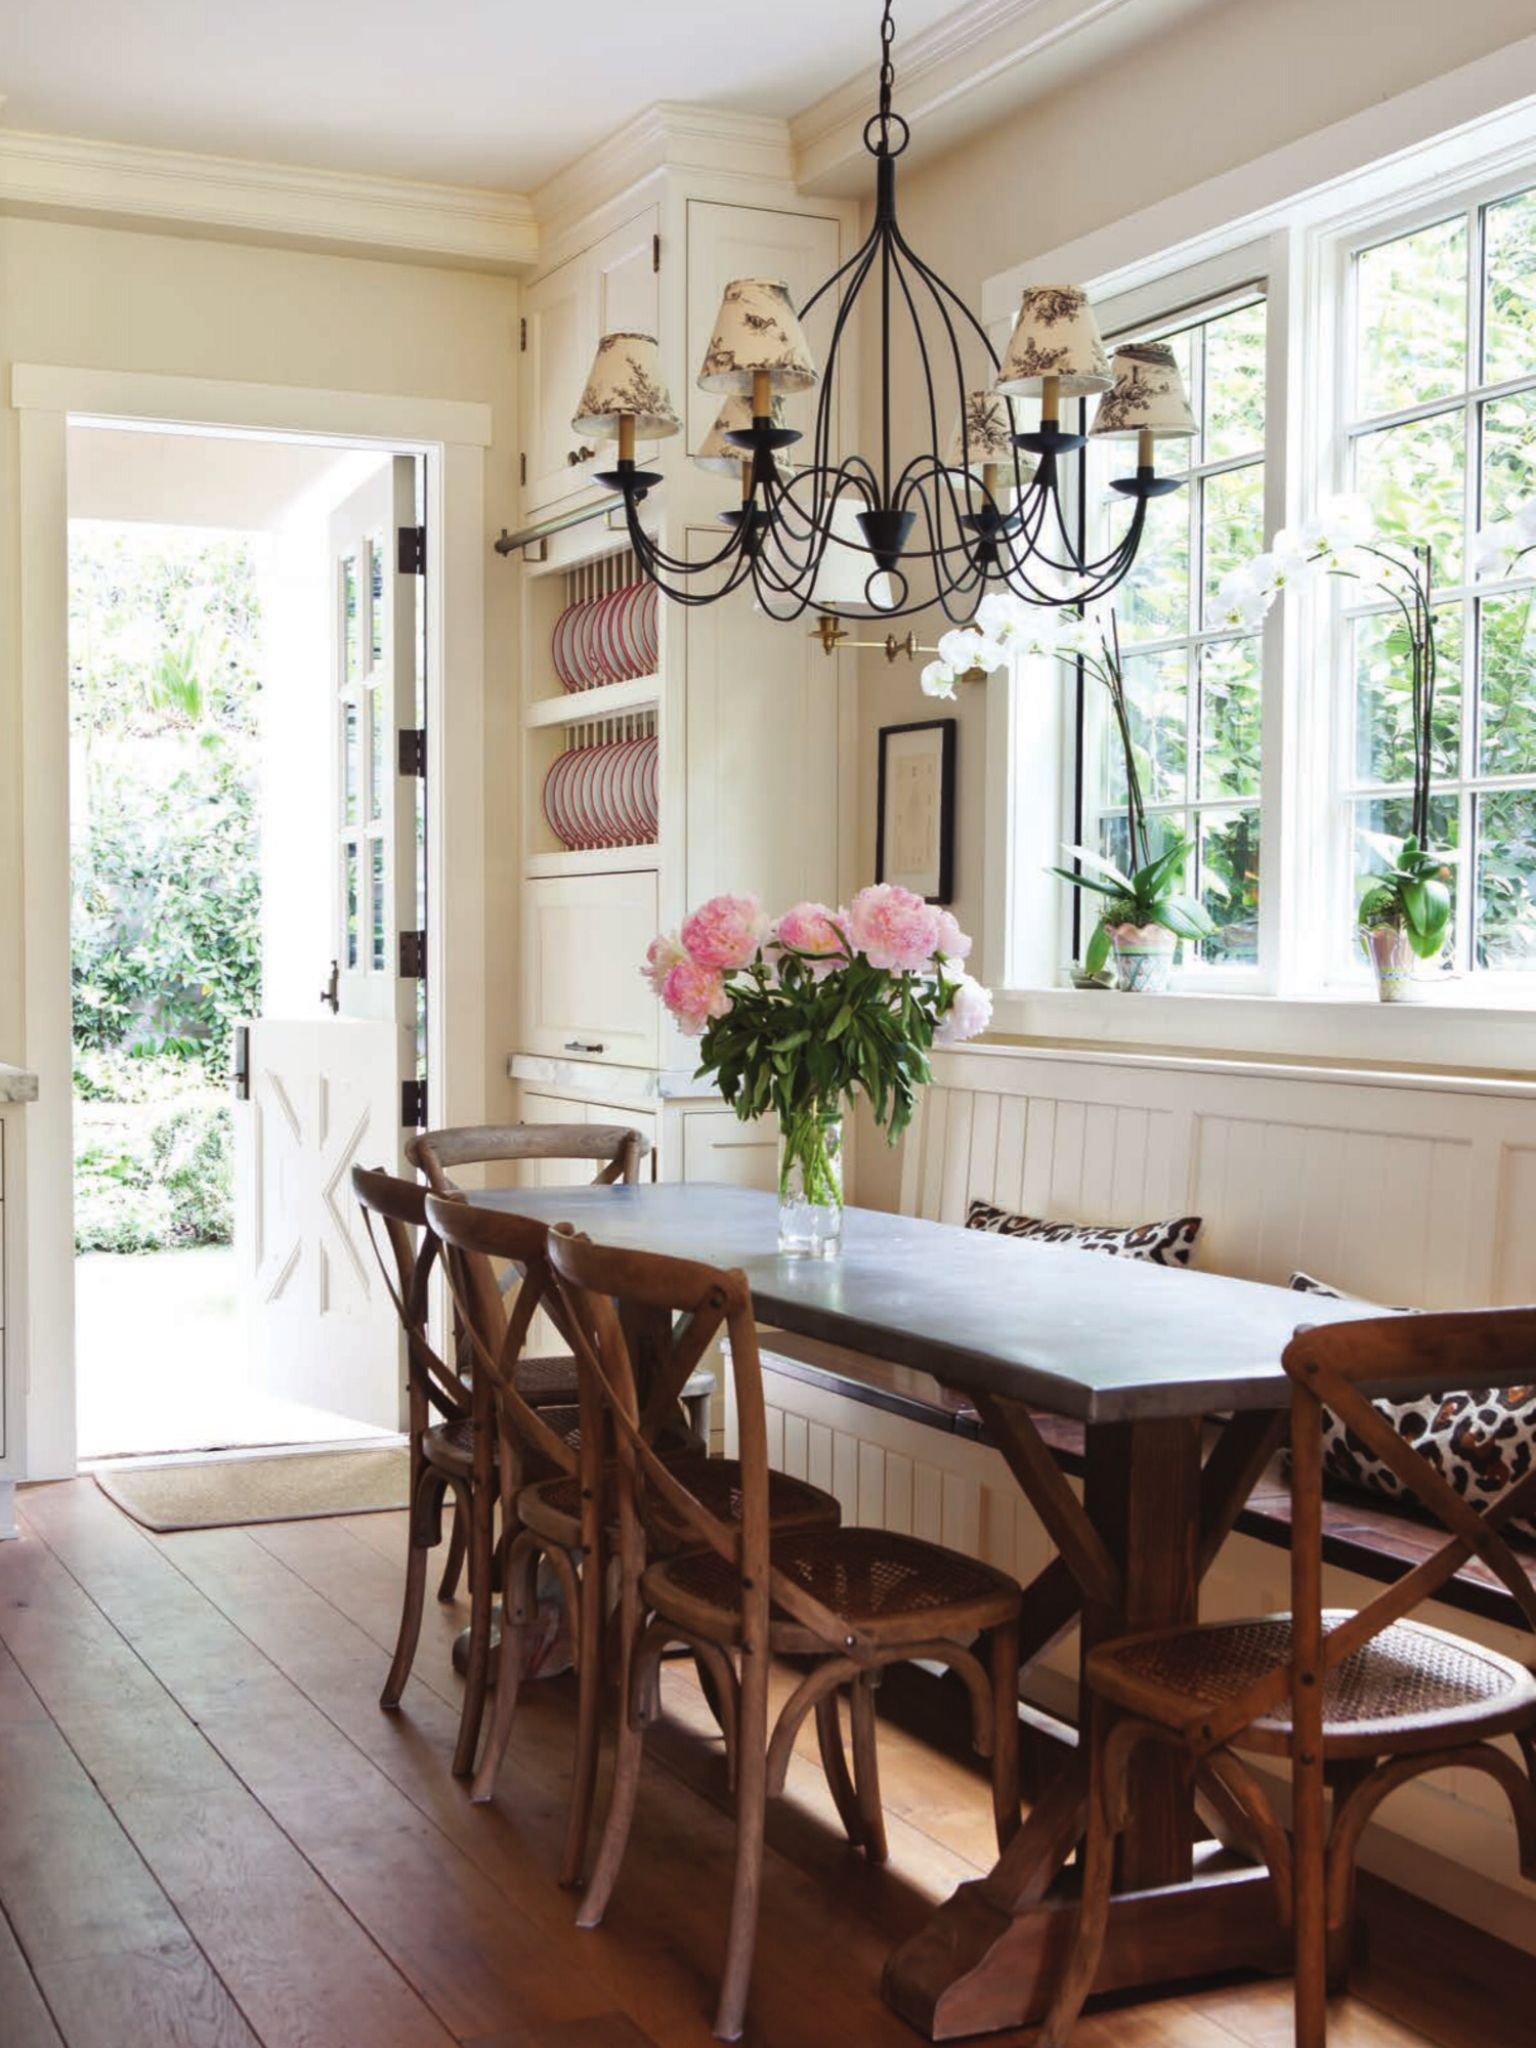 Kitchen Design Long Narrow Room: From The Cottage Journal, Spring 2014. Love The Trestle